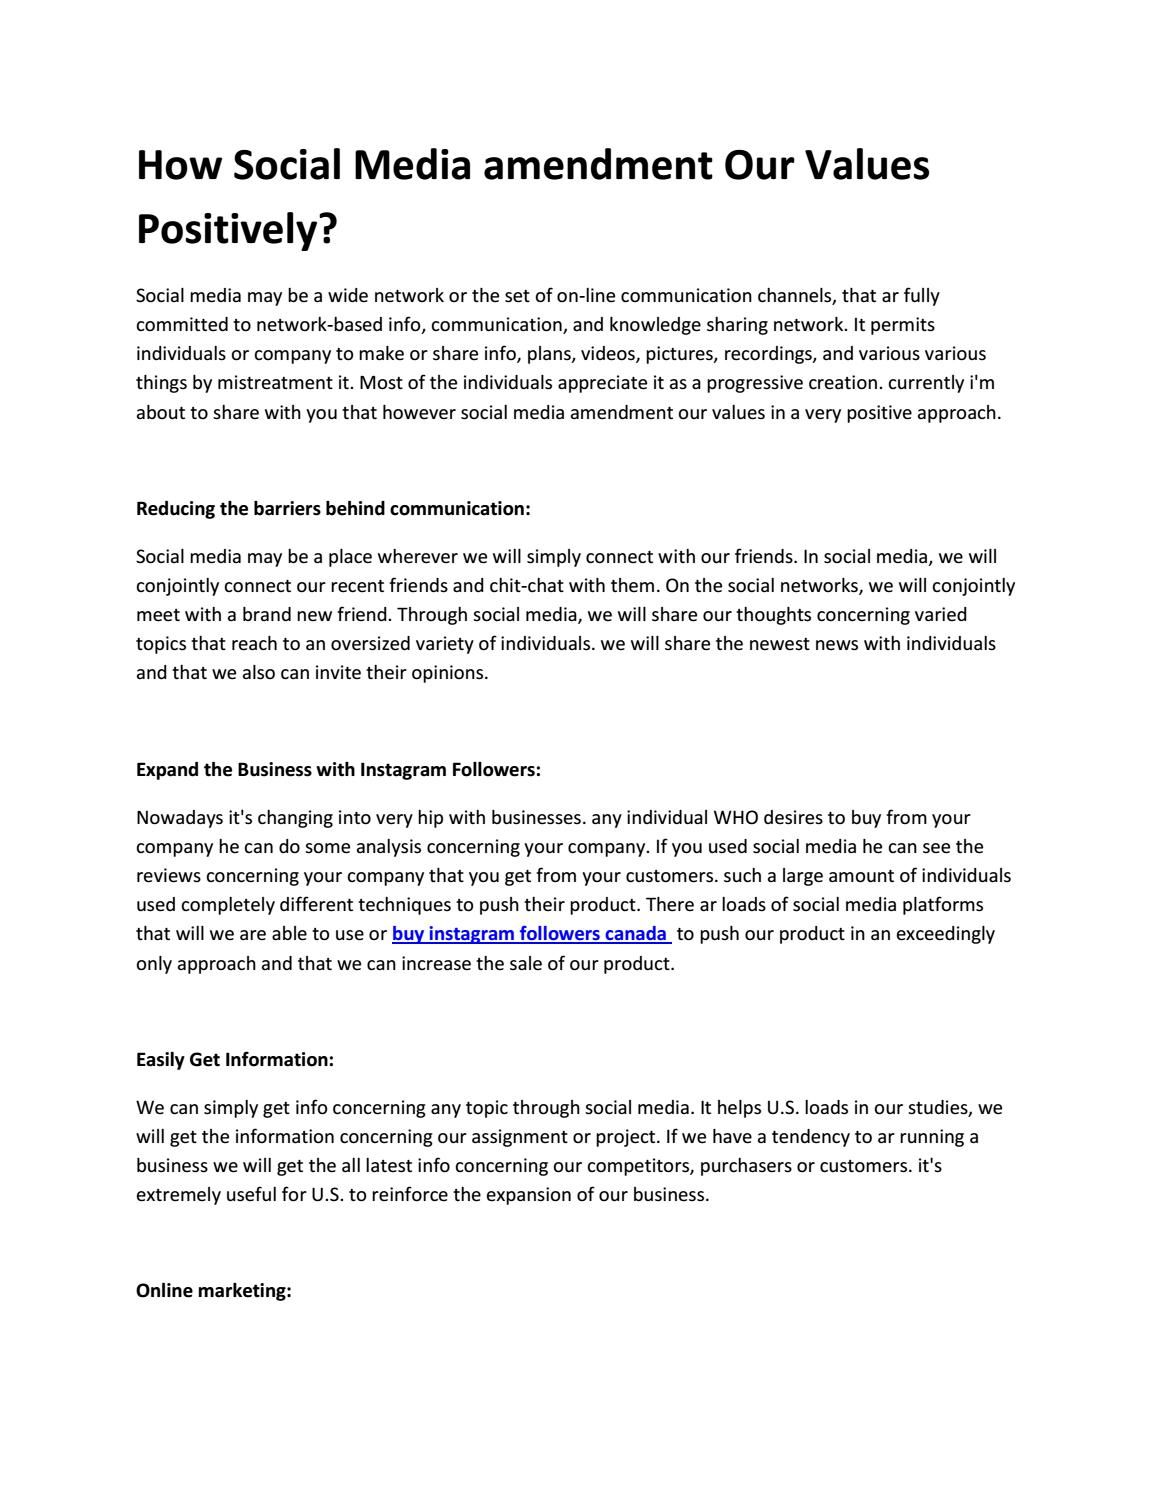 How Social Media amendment Our Values Positively? (With